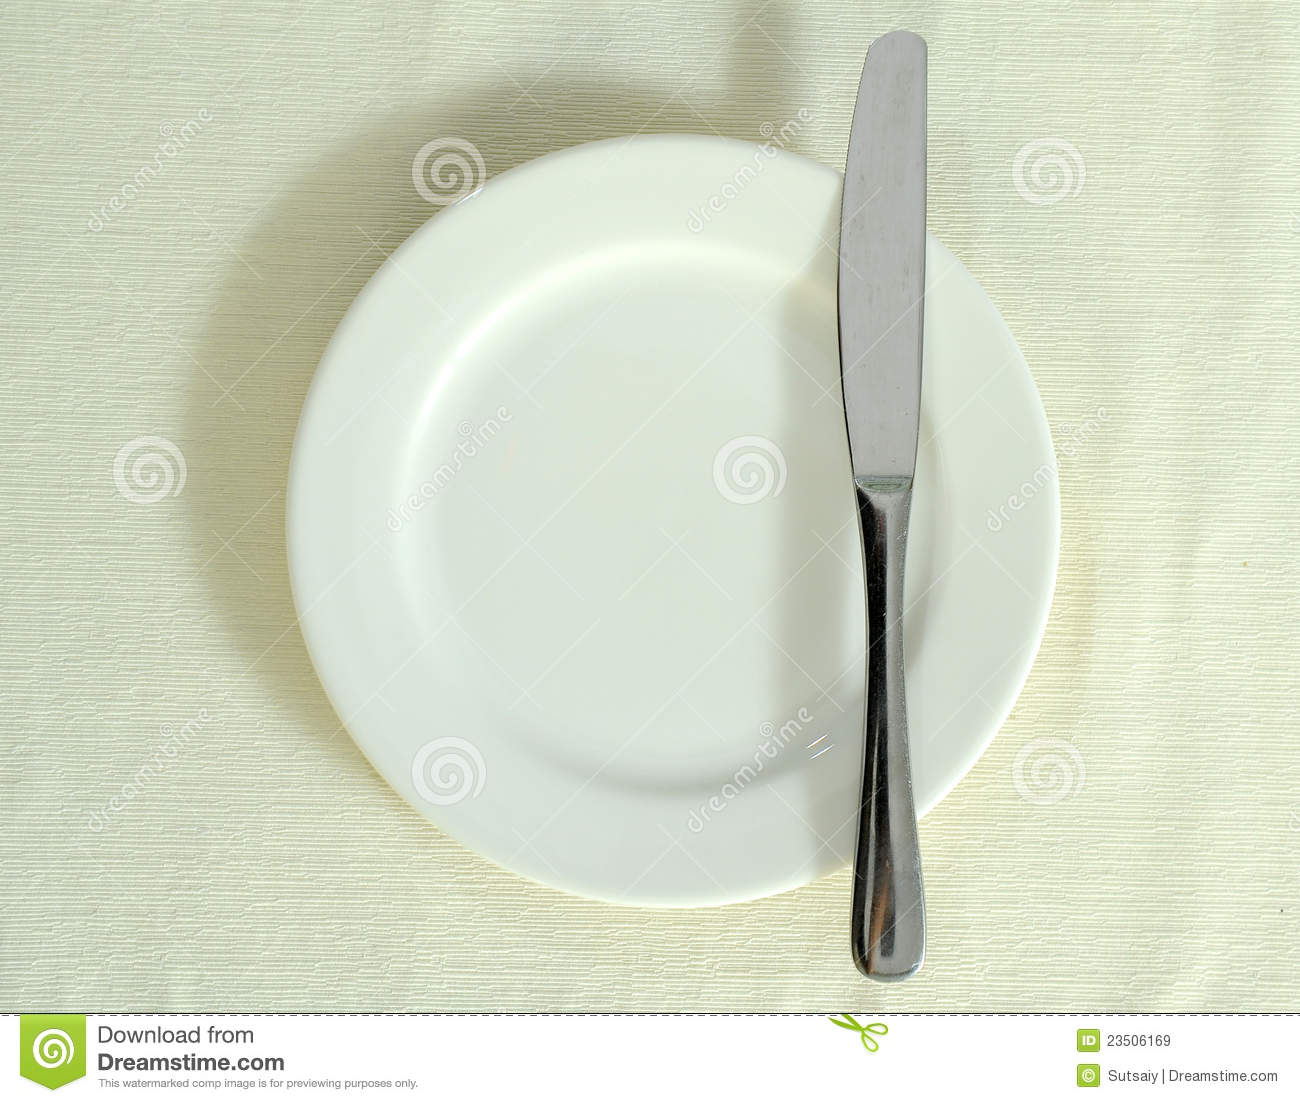 Knife white plate royalty free stock images image 23506169